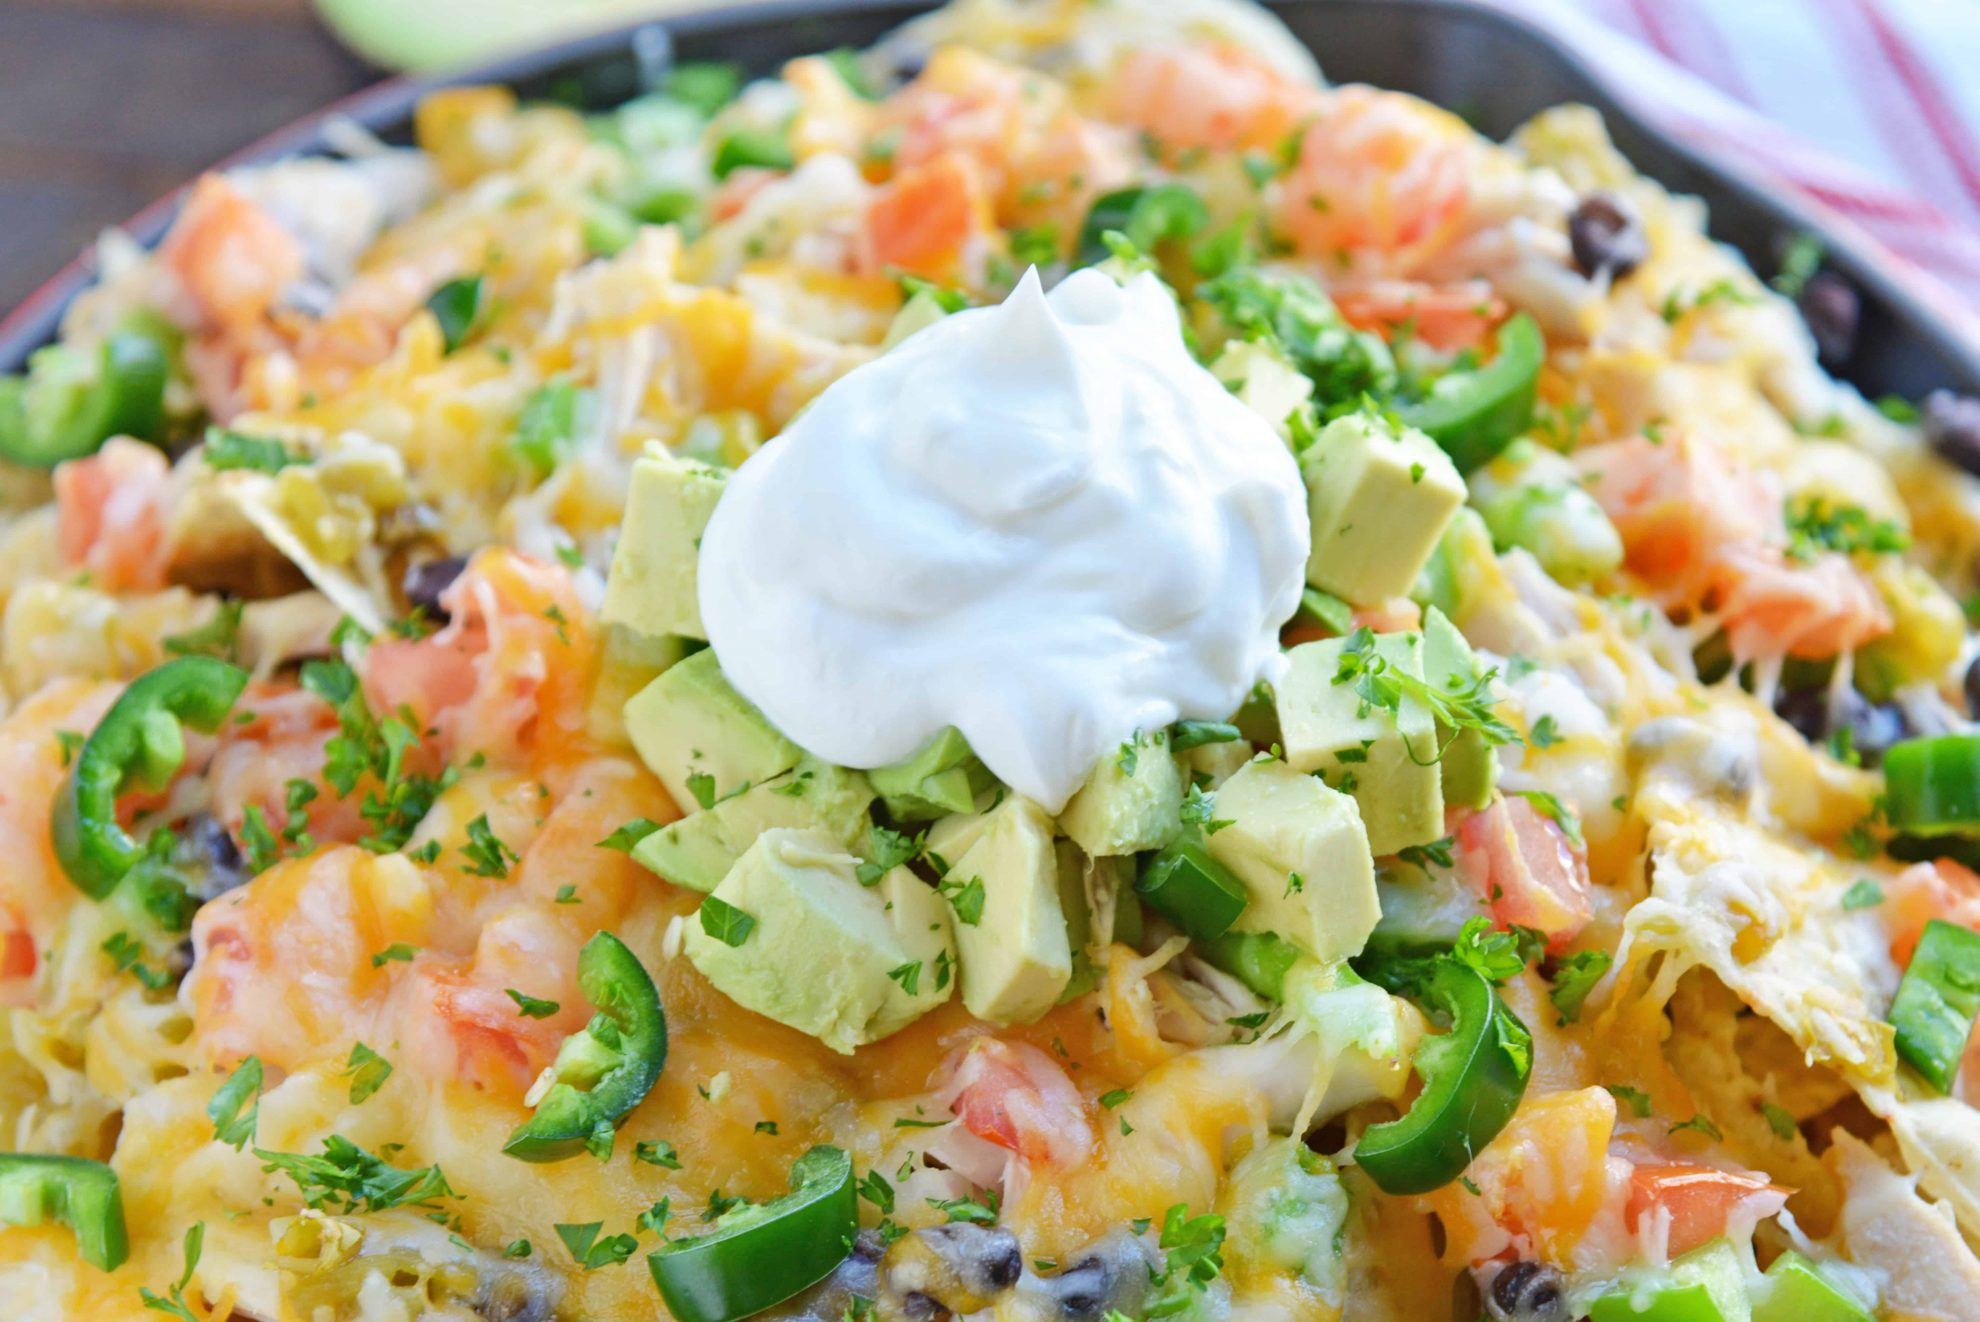 Loaded nachos with yogurt topping